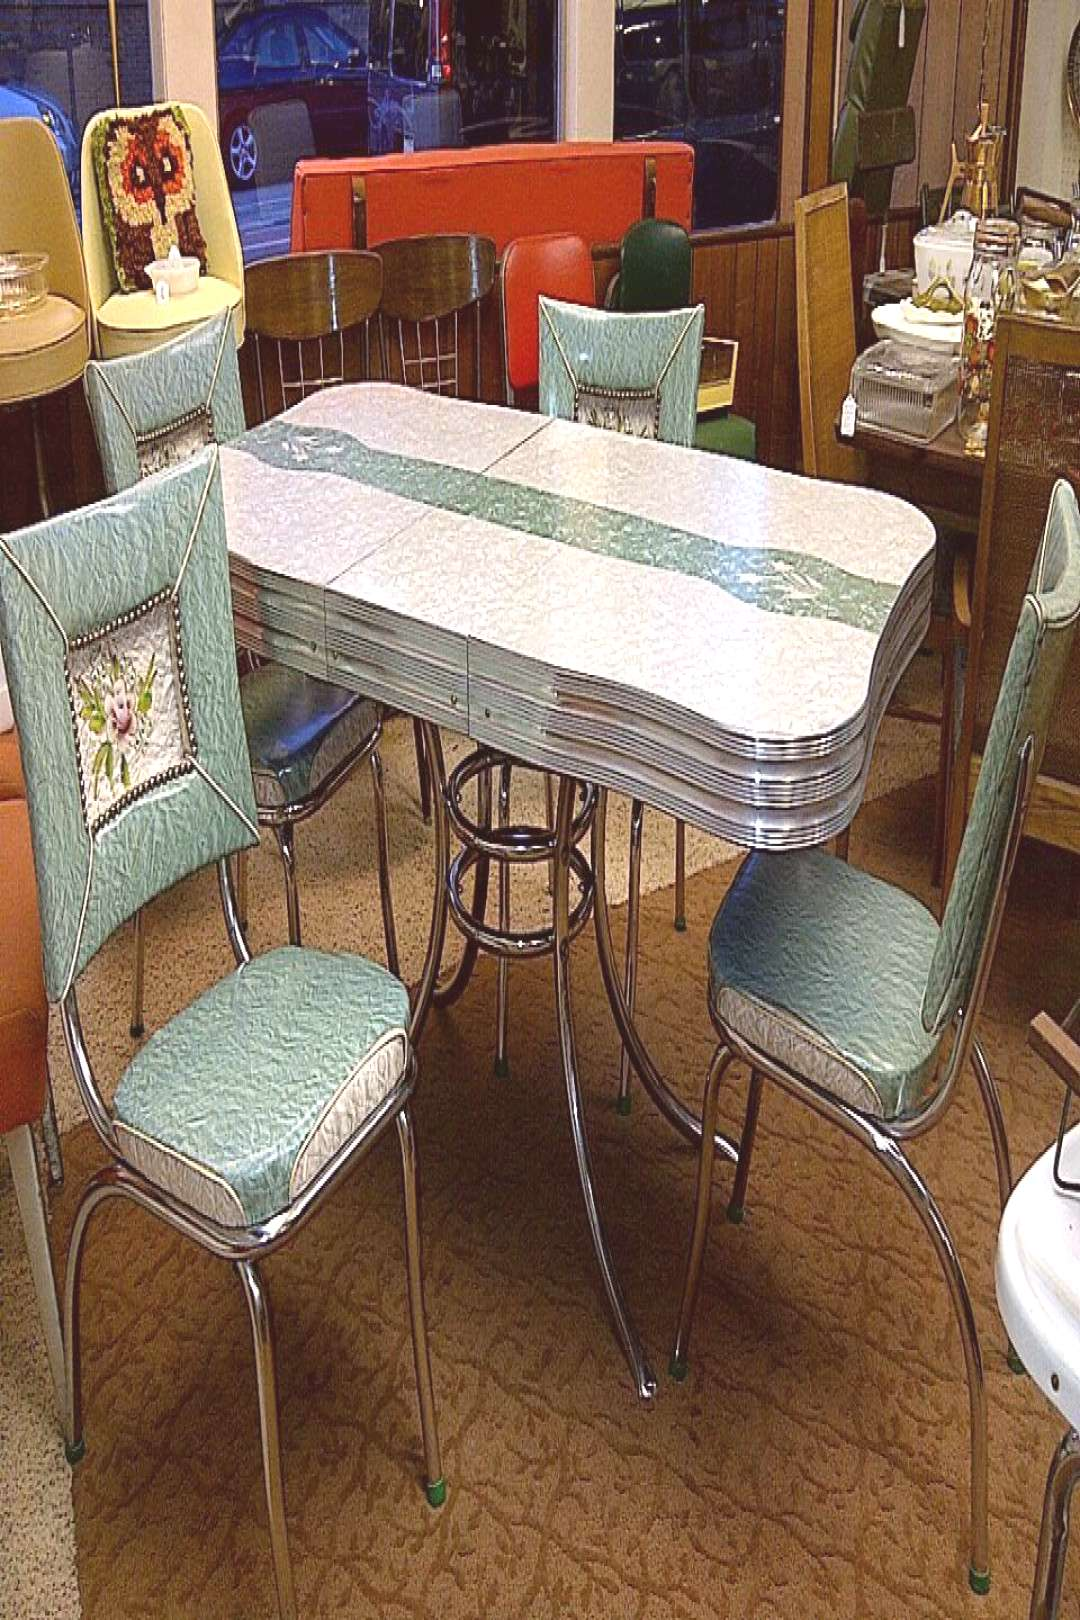 112 reference of blue retro kitchen table and chairs blue retro kitchen table and chairs-#blue Plea